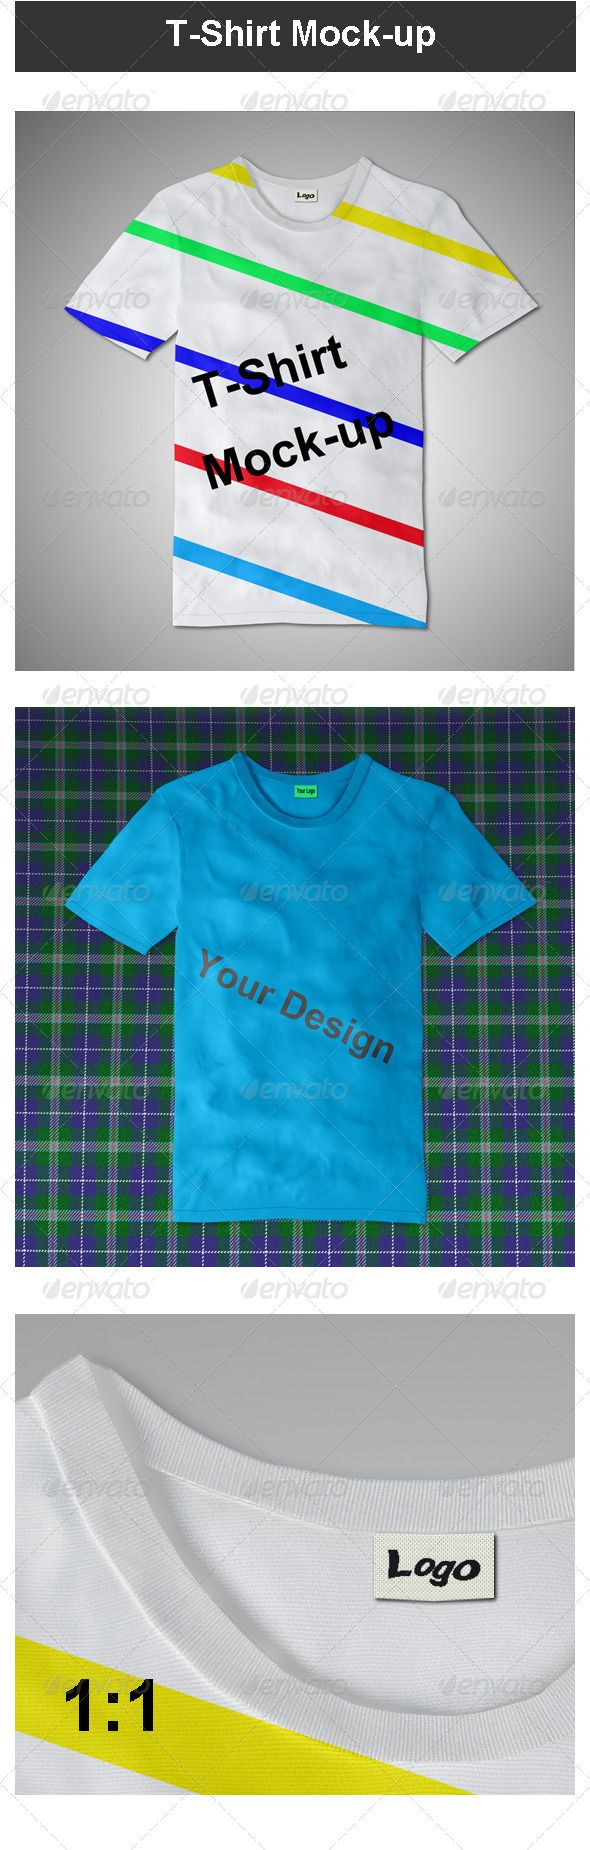 Scalable t shirt mockups more info - T Shirt Mock Up